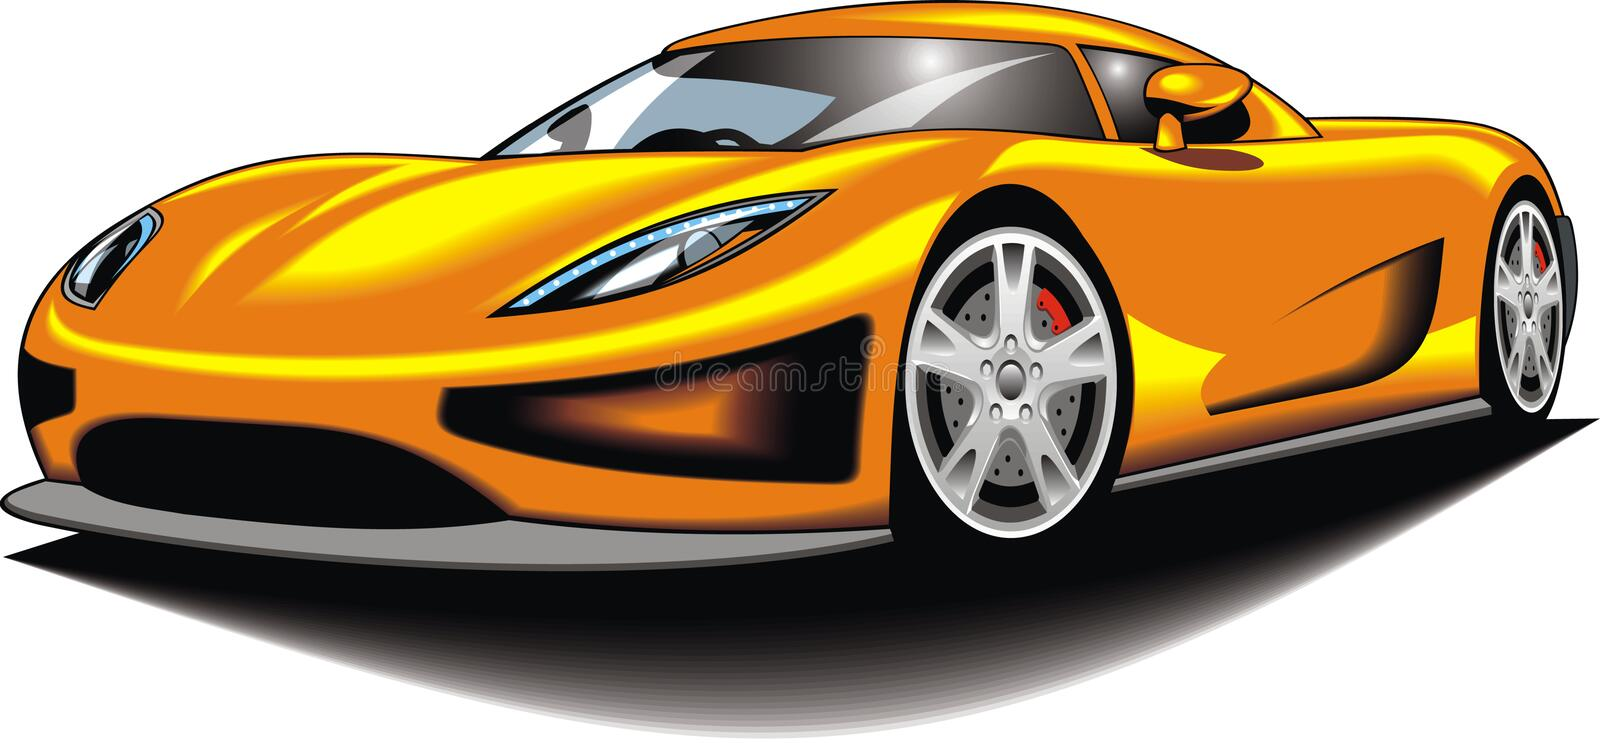 My original sport car (my design) in yellow color vector illustration